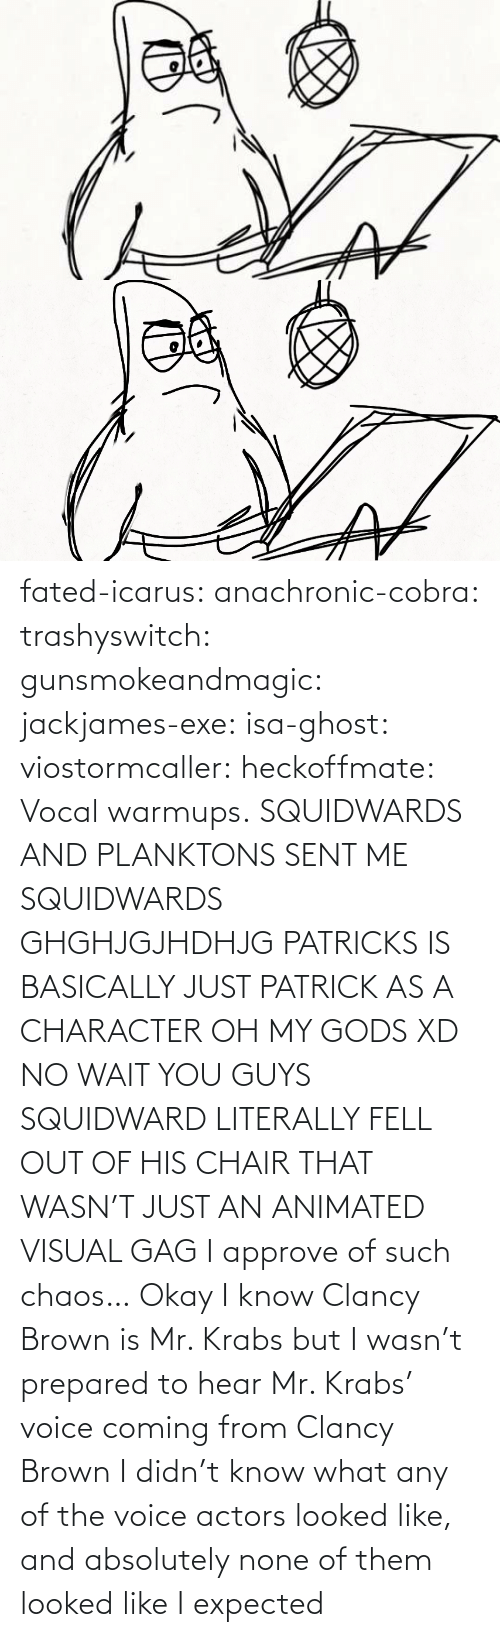 absolutely: fated-icarus:  anachronic-cobra: trashyswitch:  gunsmokeandmagic:  jackjames-exe:  isa-ghost:   viostormcaller:  heckoffmate: Vocal warmups. SQUIDWARDS AND PLANKTONS SENT ME  SQUIDWARDS GHGHJGJHDHJG   PATRICKS IS BASICALLY JUST PATRICK AS A CHARACTER OH MY GODS XD   NO WAIT YOU GUYS SQUIDWARD LITERALLY FELL OUT OF HIS CHAIR THAT WASN'T JUST AN ANIMATED VISUAL GAG    I approve of such chaos…    Okay I know Clancy Brown is Mr. Krabs but I wasn't prepared to hear Mr. Krabs' voice coming from Clancy Brown    I didn't know what any of the voice actors looked like, and absolutely none of them looked like I expected